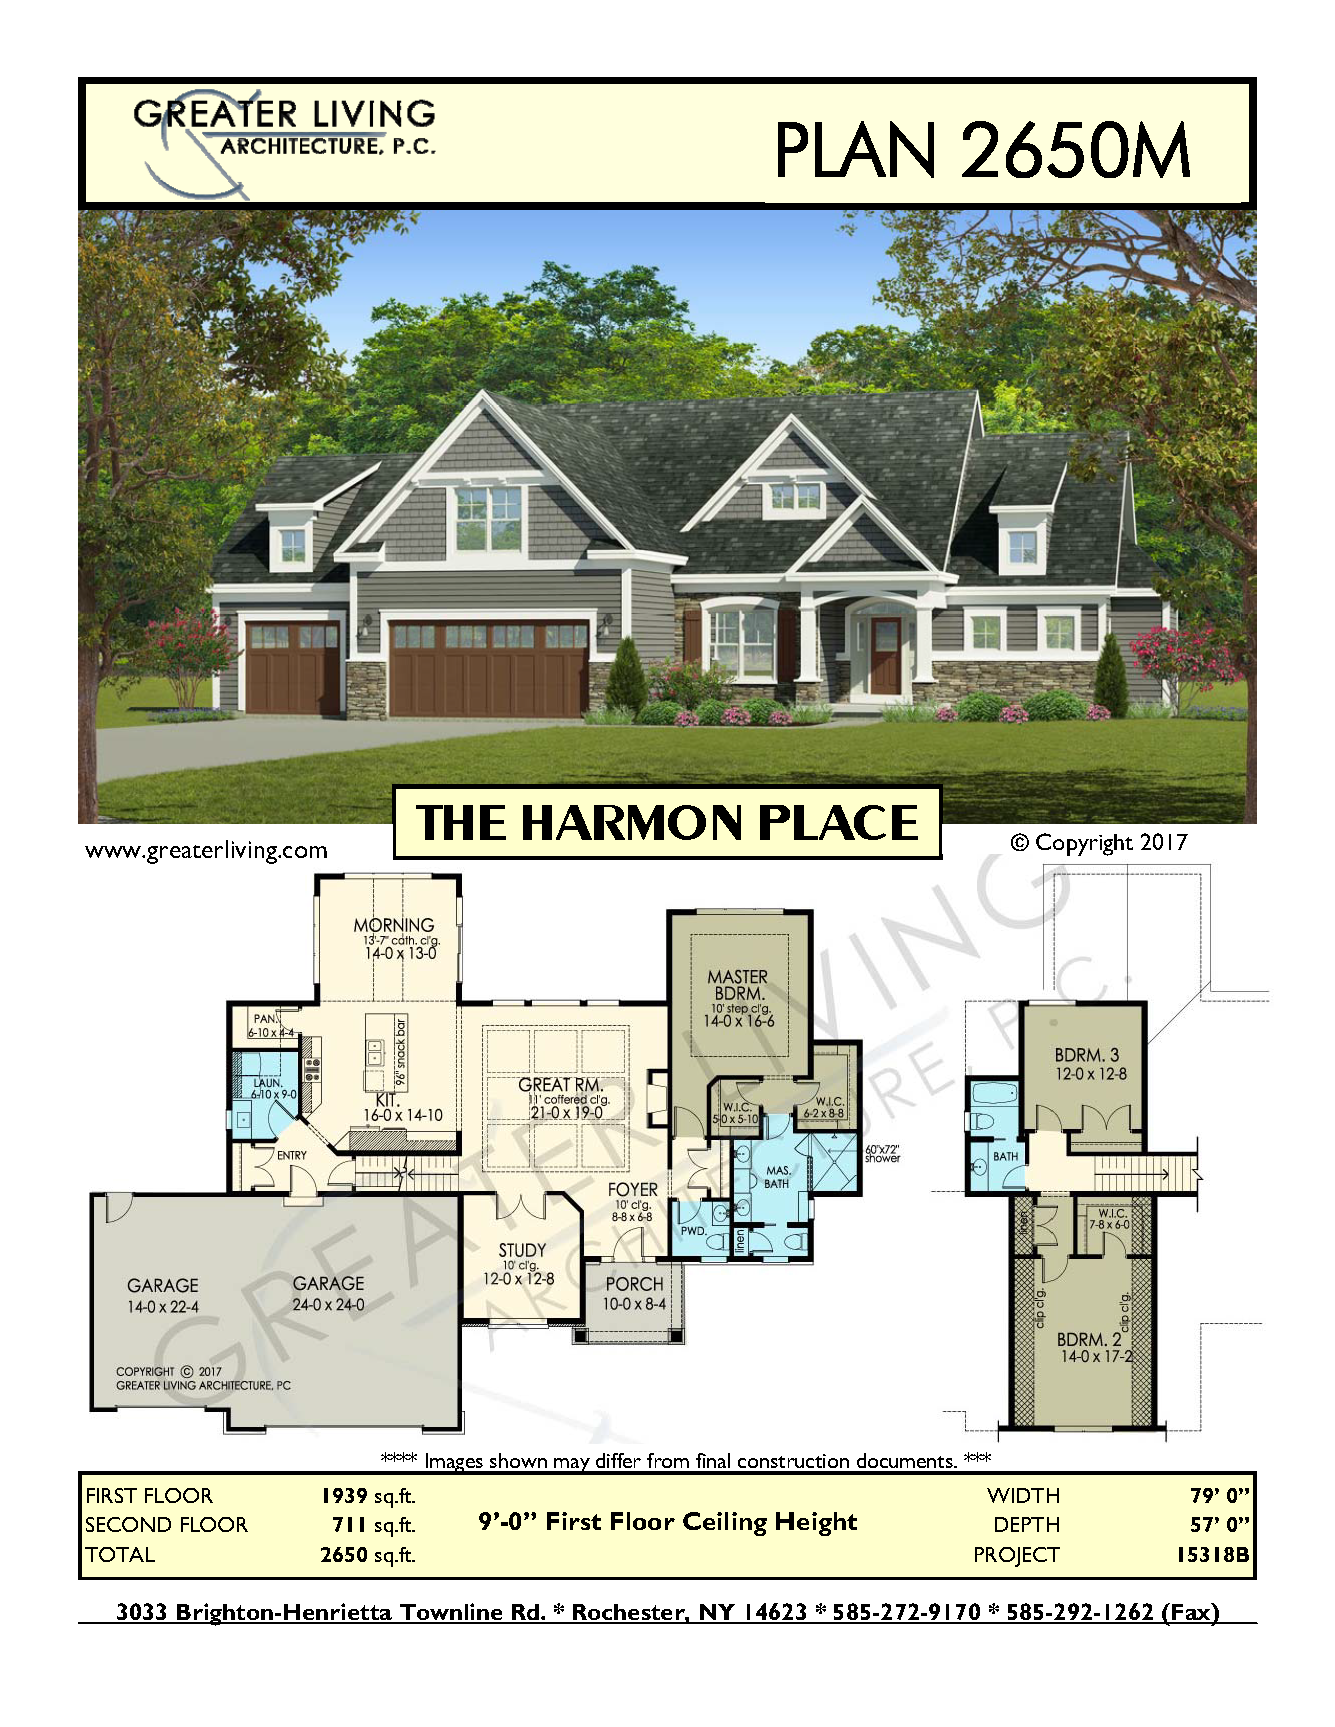 Plan 2650M: THE HARMON PLACE- House Plans - Two Story House Plans ...